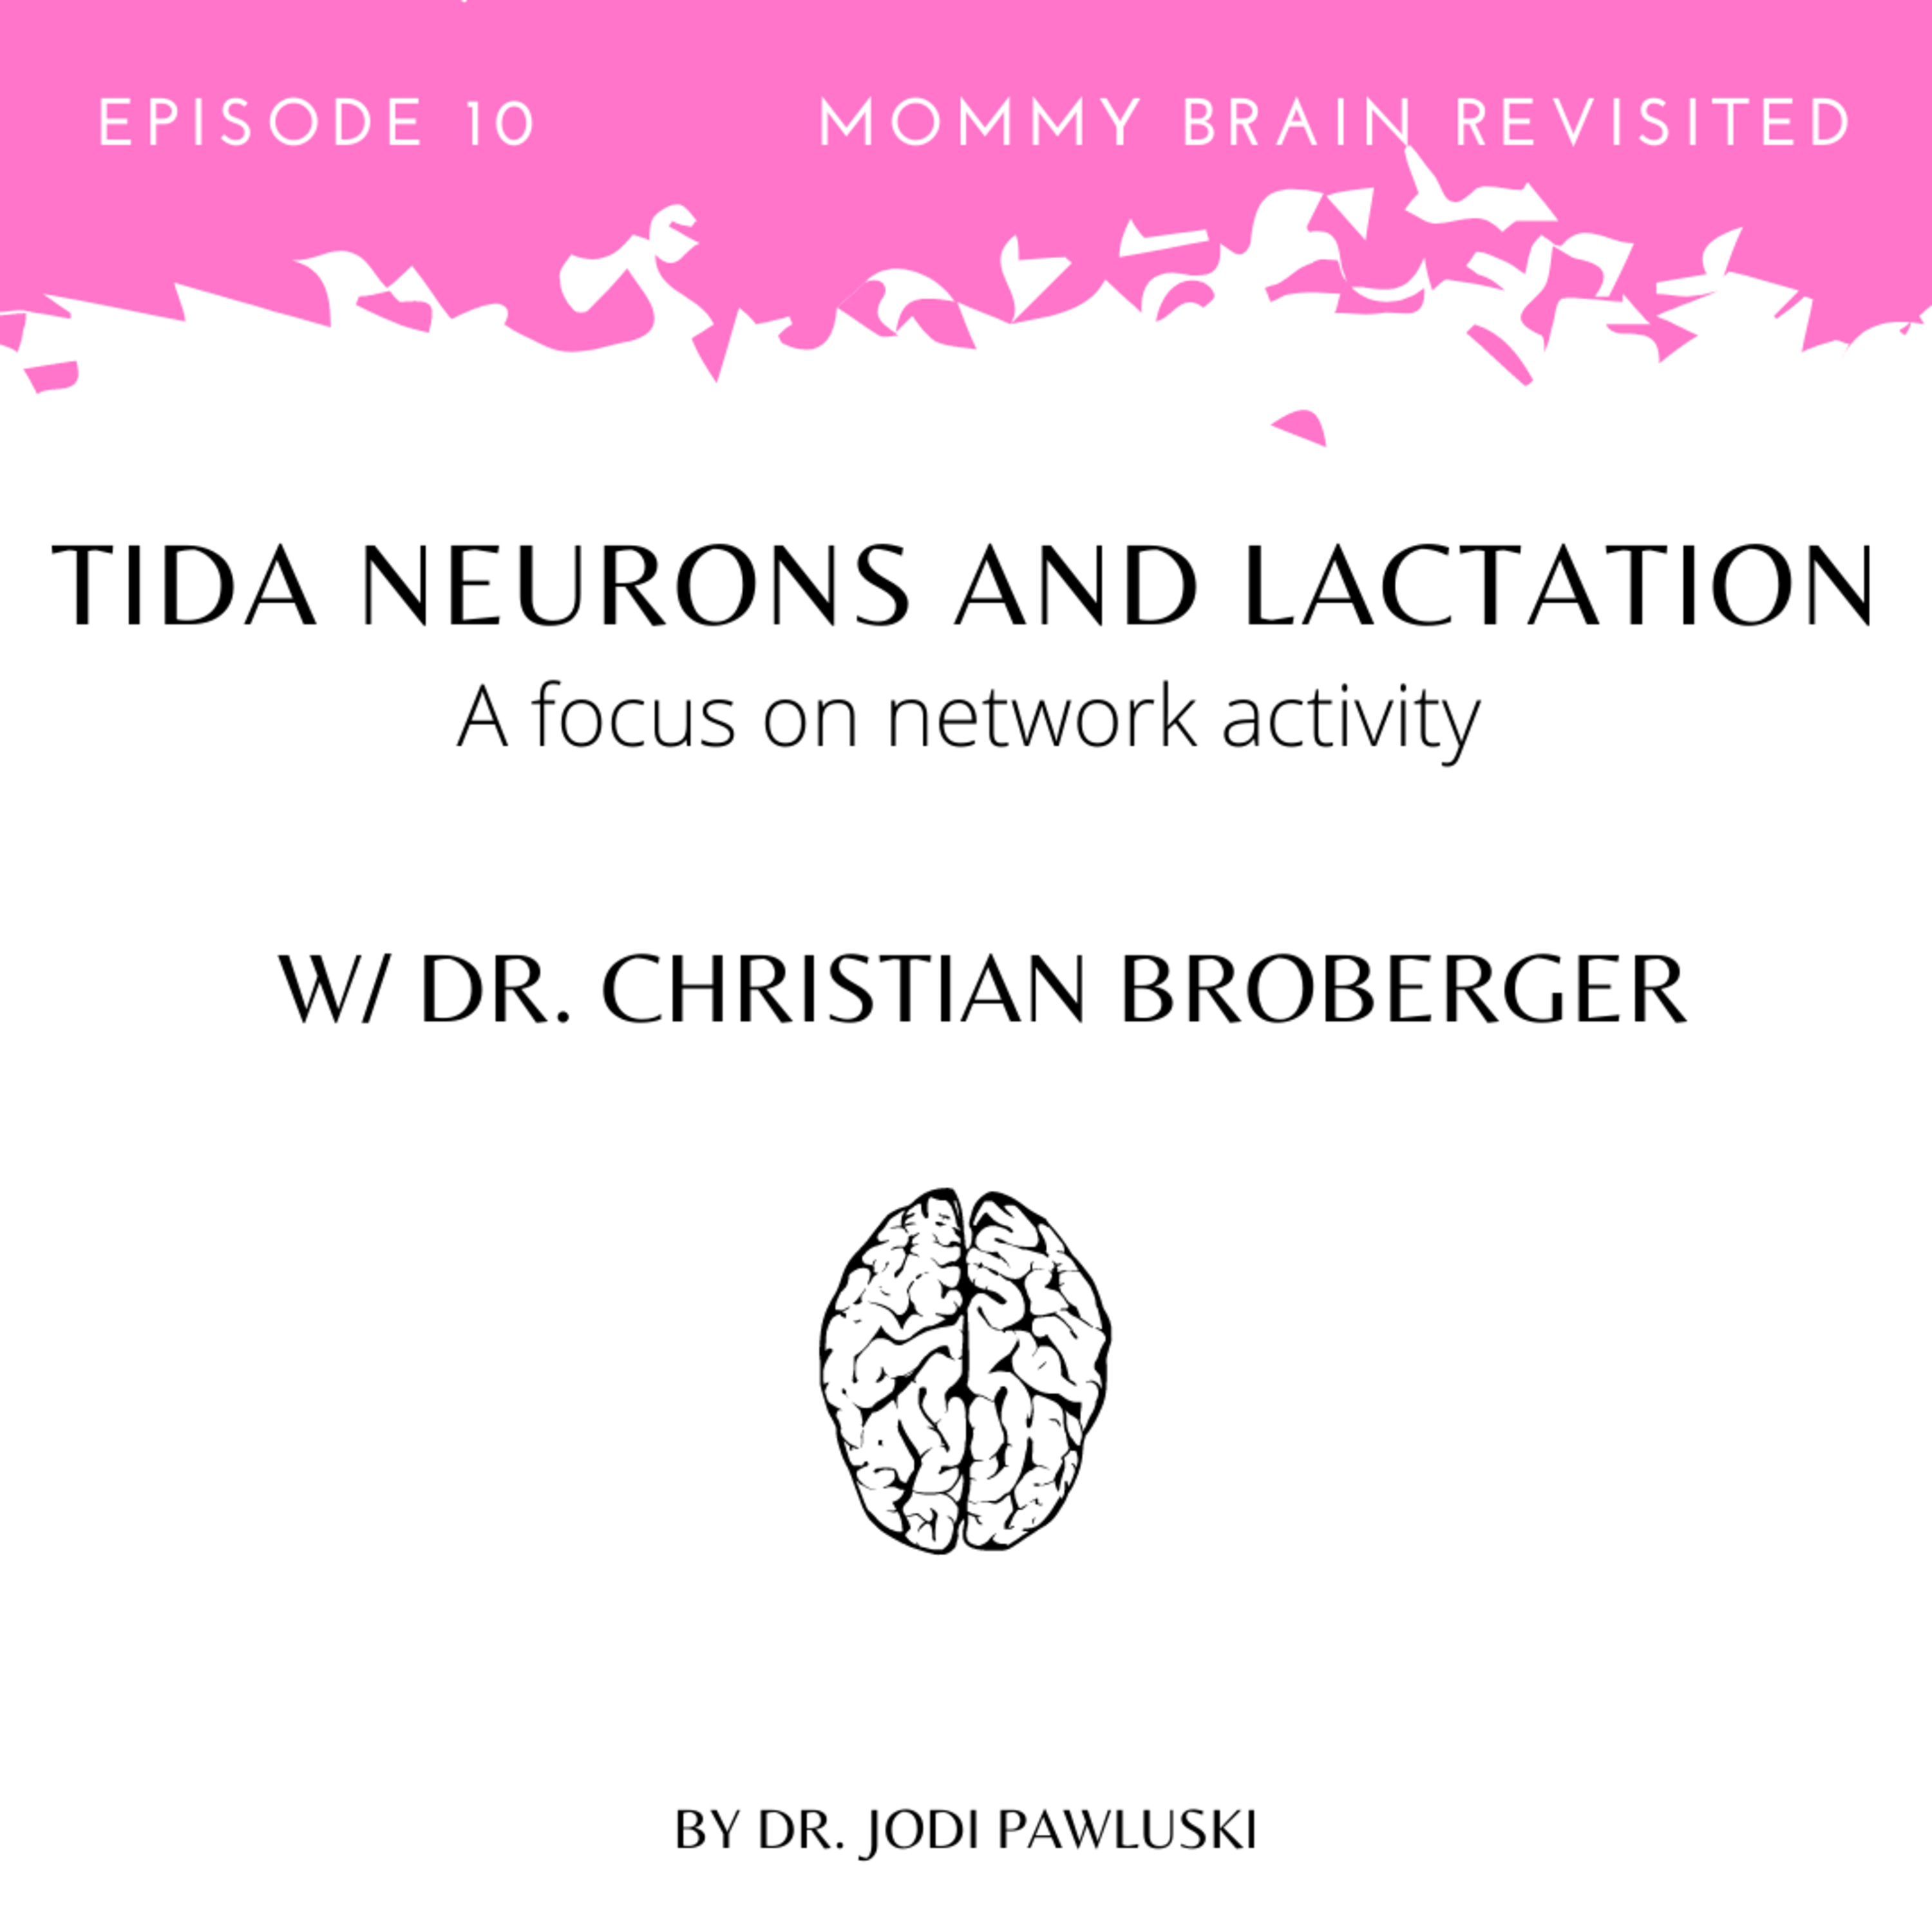 10. TIDA Neurons and Lactation: A focus on network activity